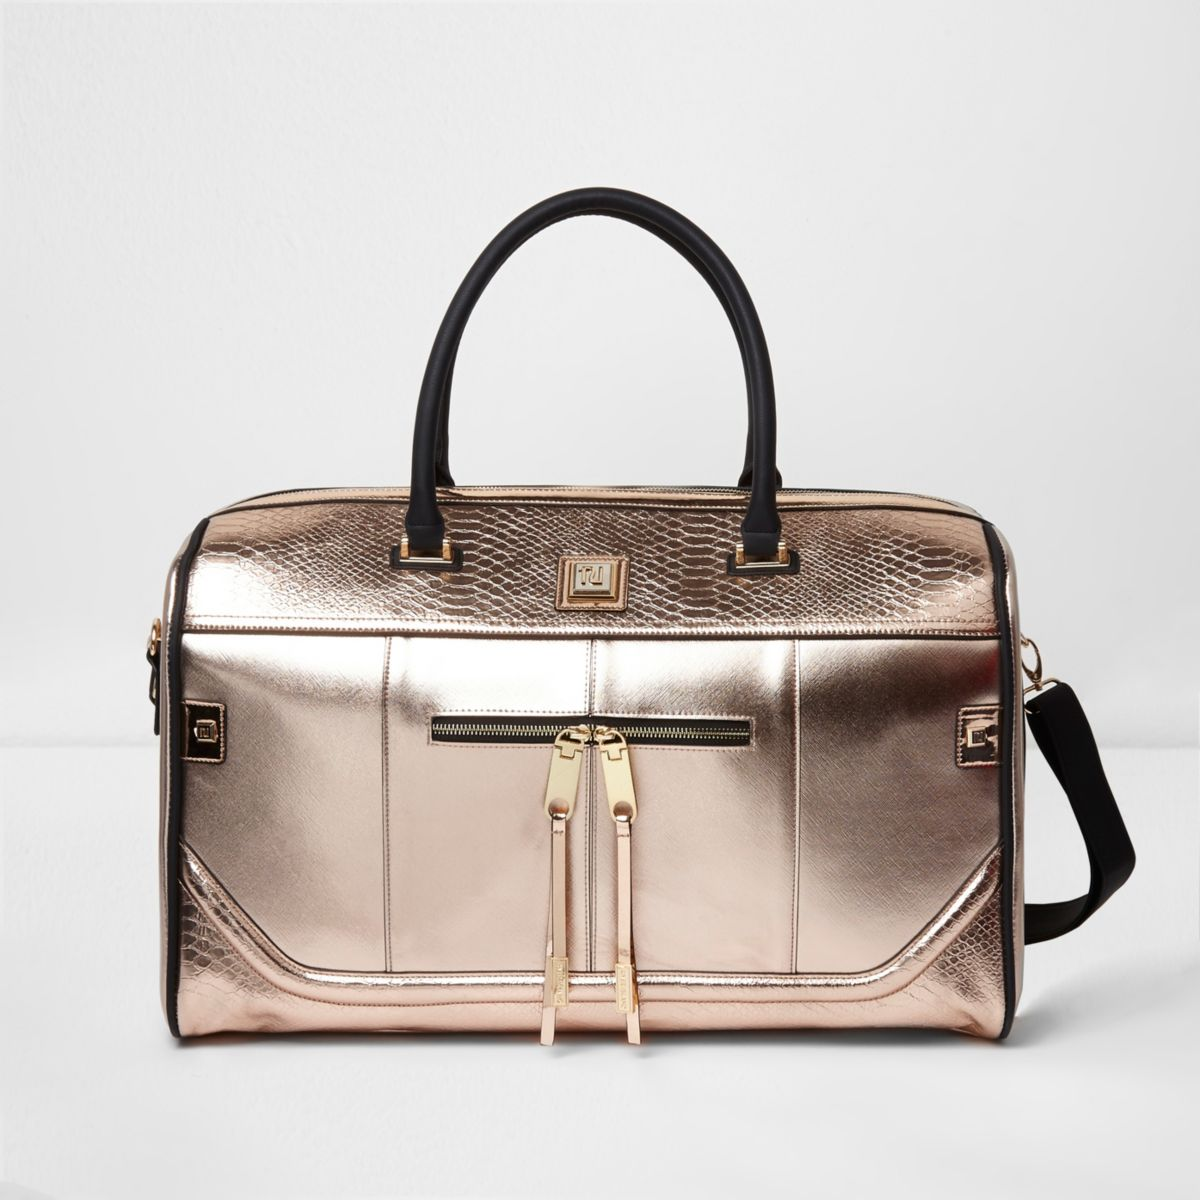 Rose gold metallic weekend bag